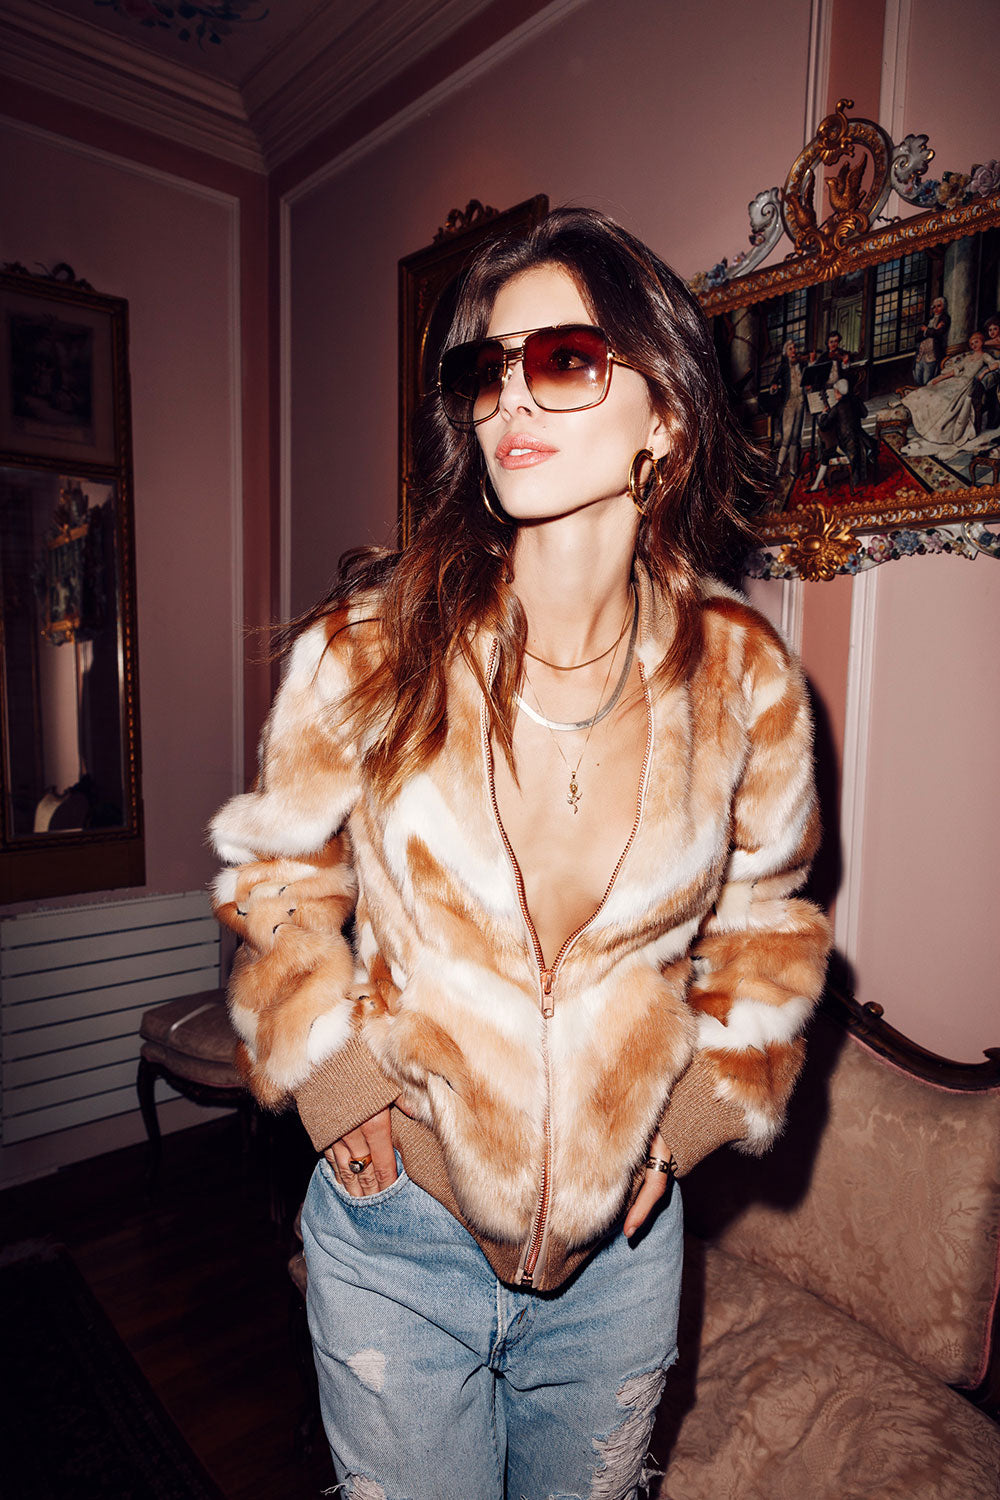 Faux Fur Calico Bomber Jacket, WOMENS, chaserbrand.com,chaser clothing,chaser apparel,chaser los angeles